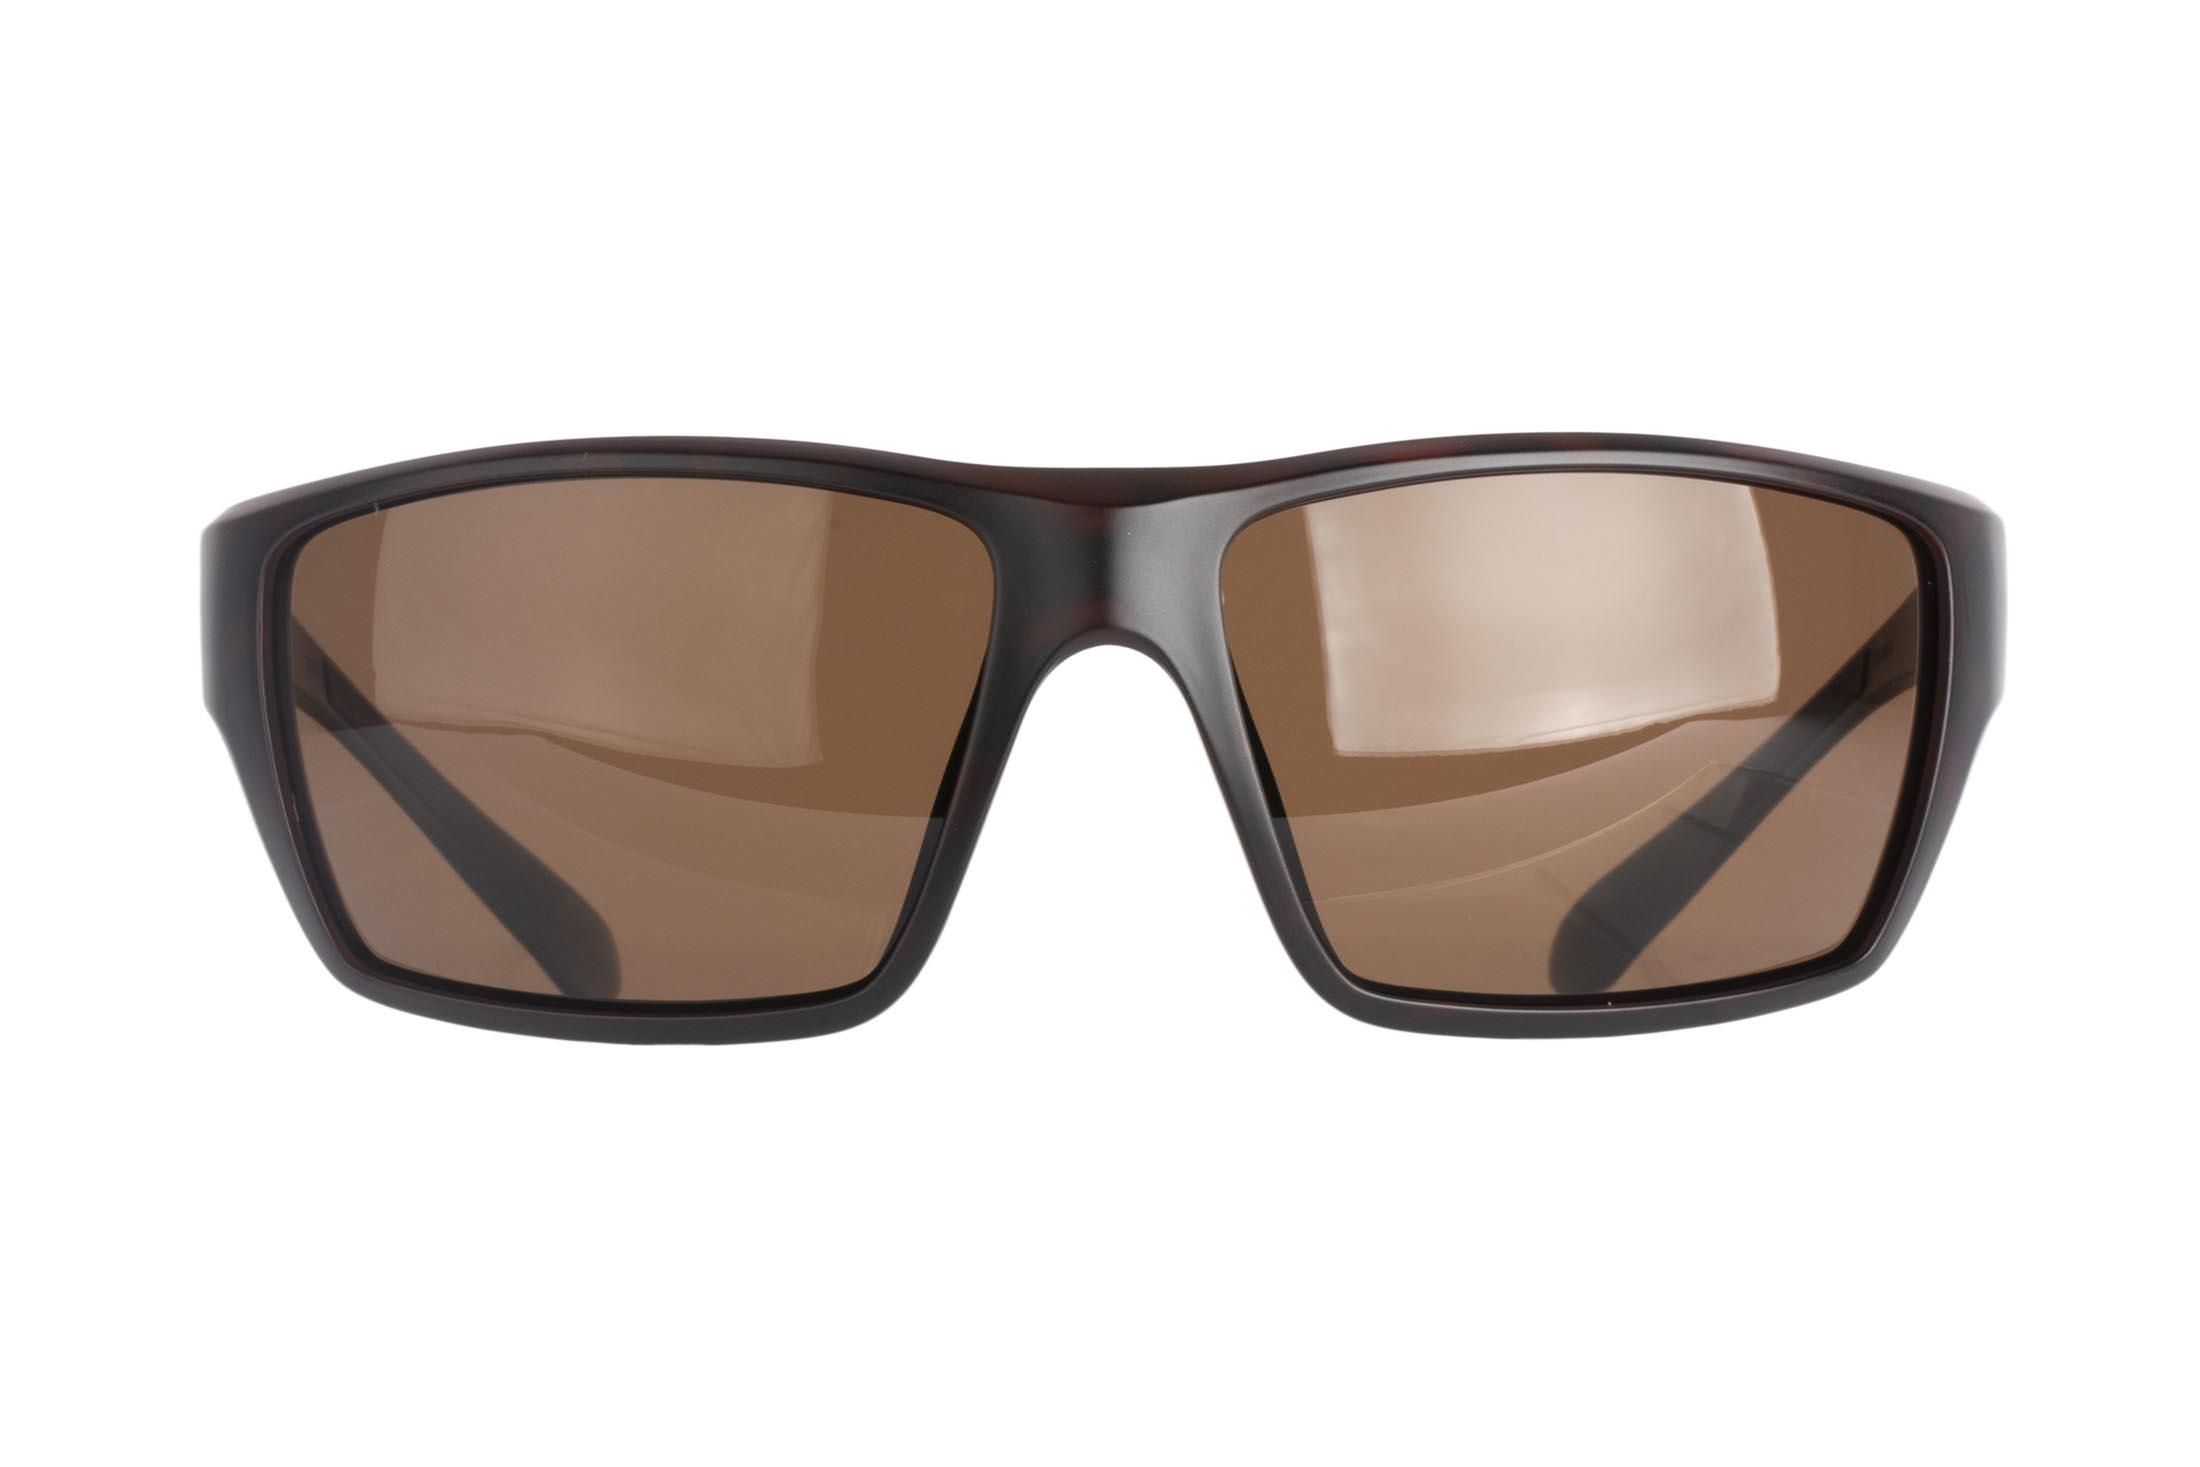 Magpul Terrain safety glasses tortoise frame and bronze polarized lenses are made from TR90ZZ theromplastic for exceptional durability